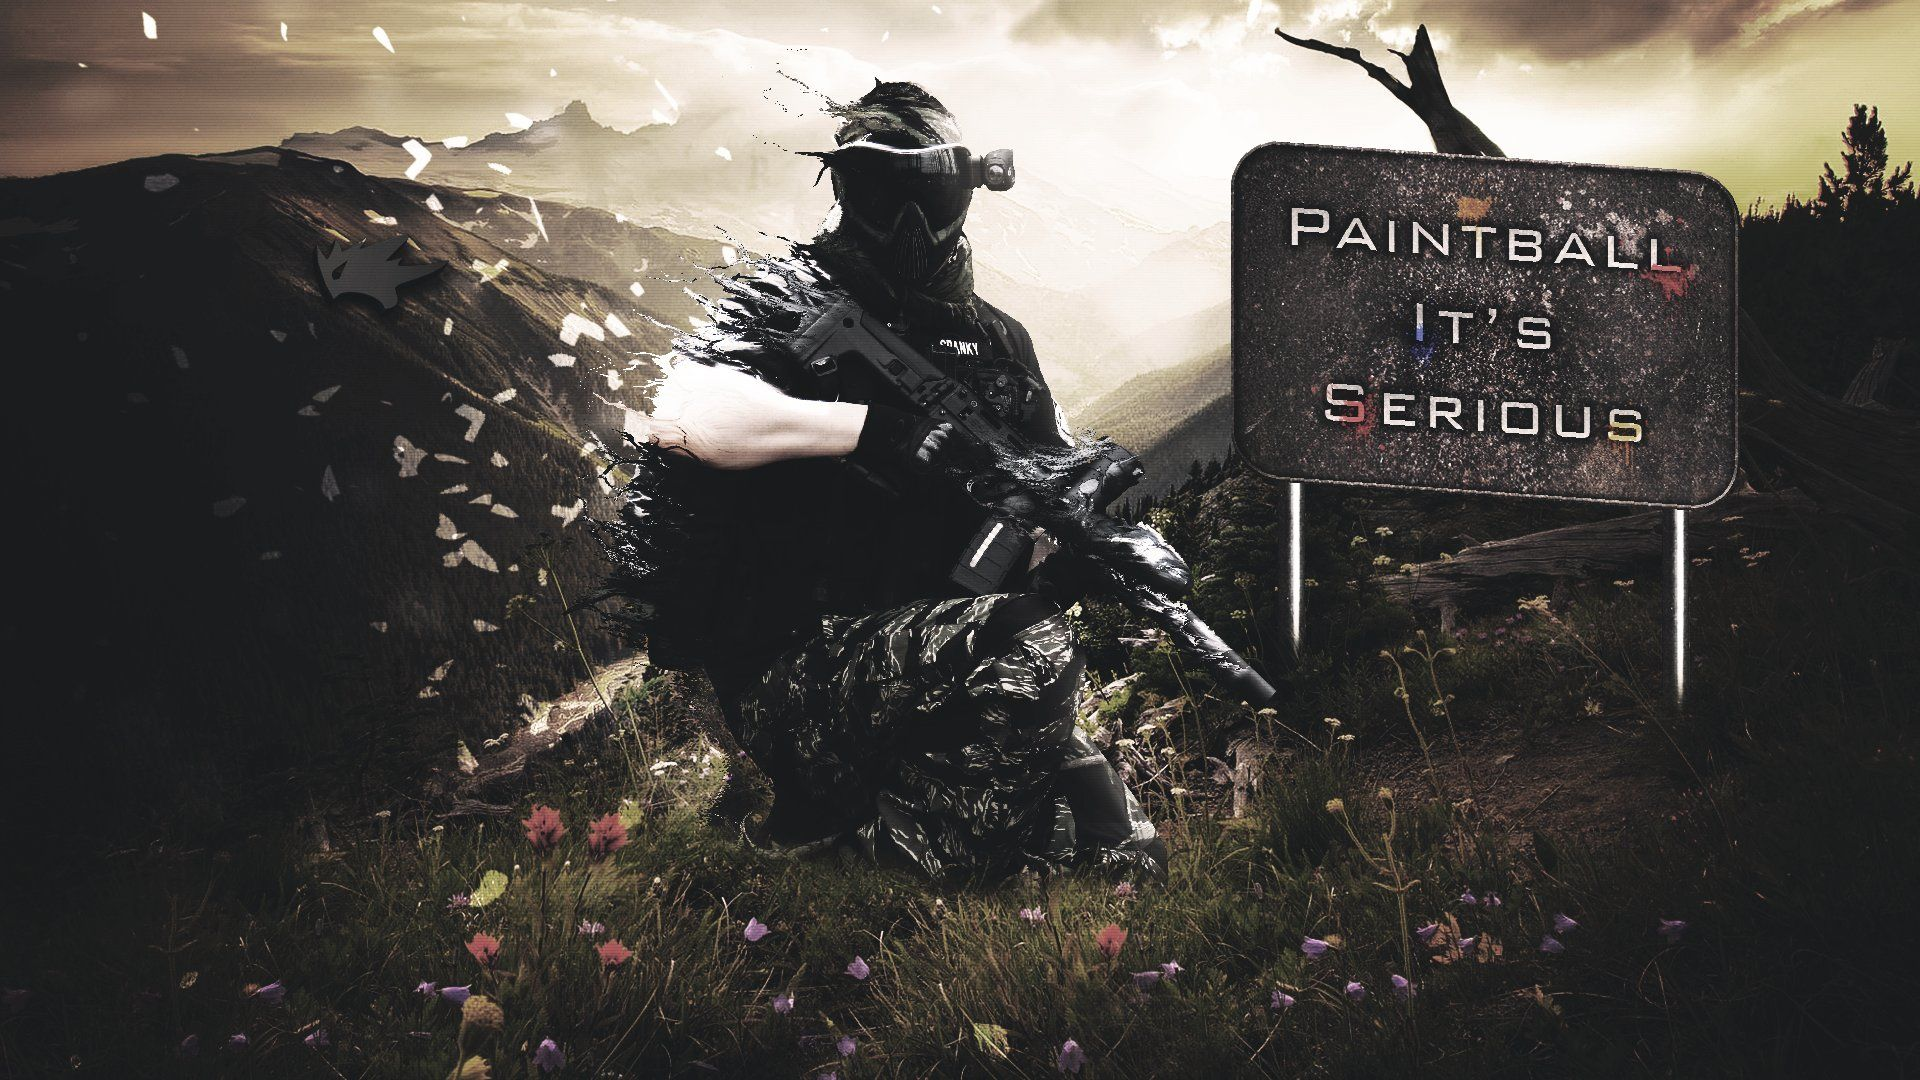 Best Paintball Wallpapers, Wide K Ultra HD Pics Collection 1024×576 Paintball Wallpaper |